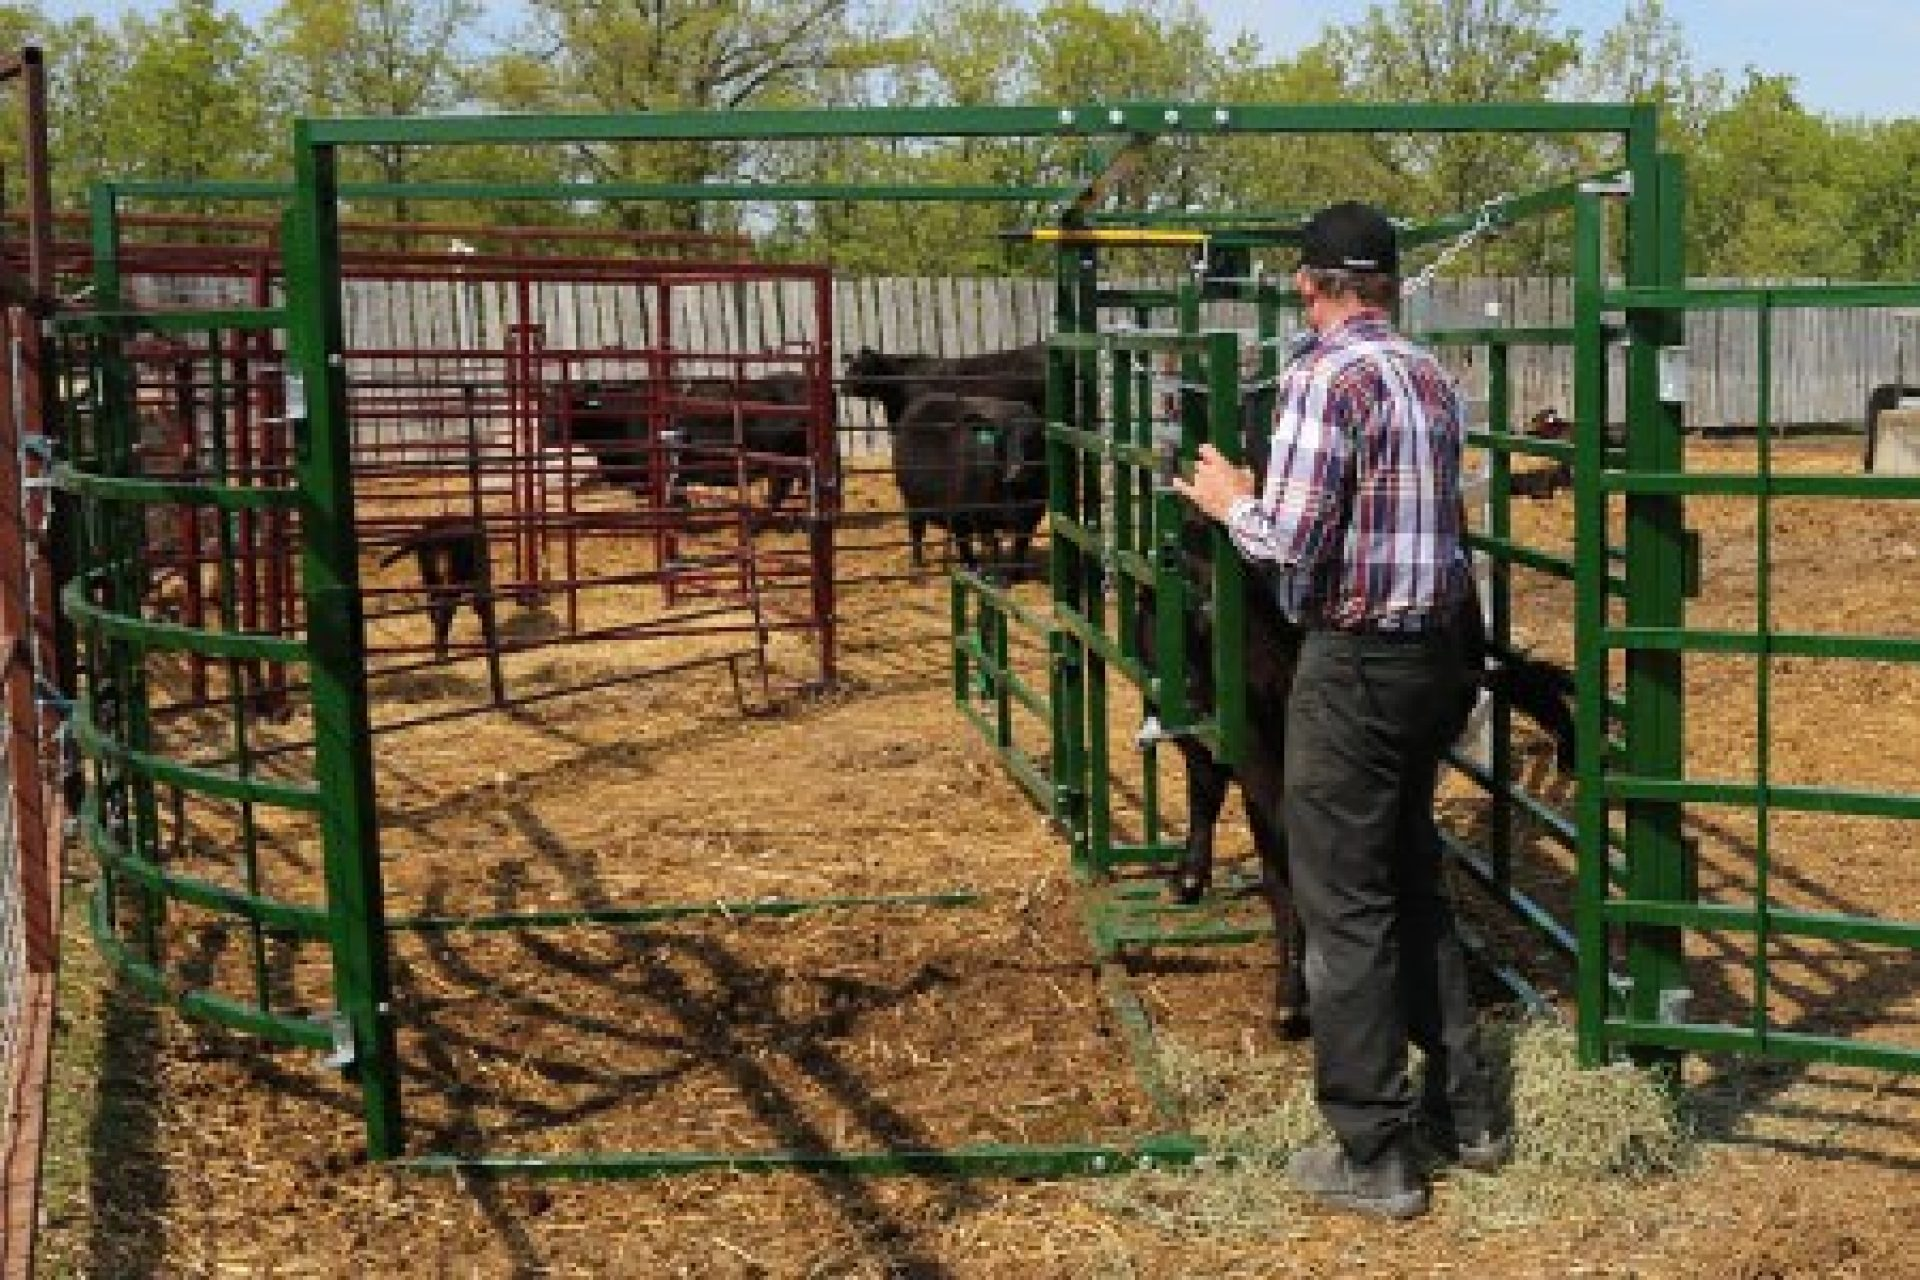 rancher using a maternity pen with a black cow